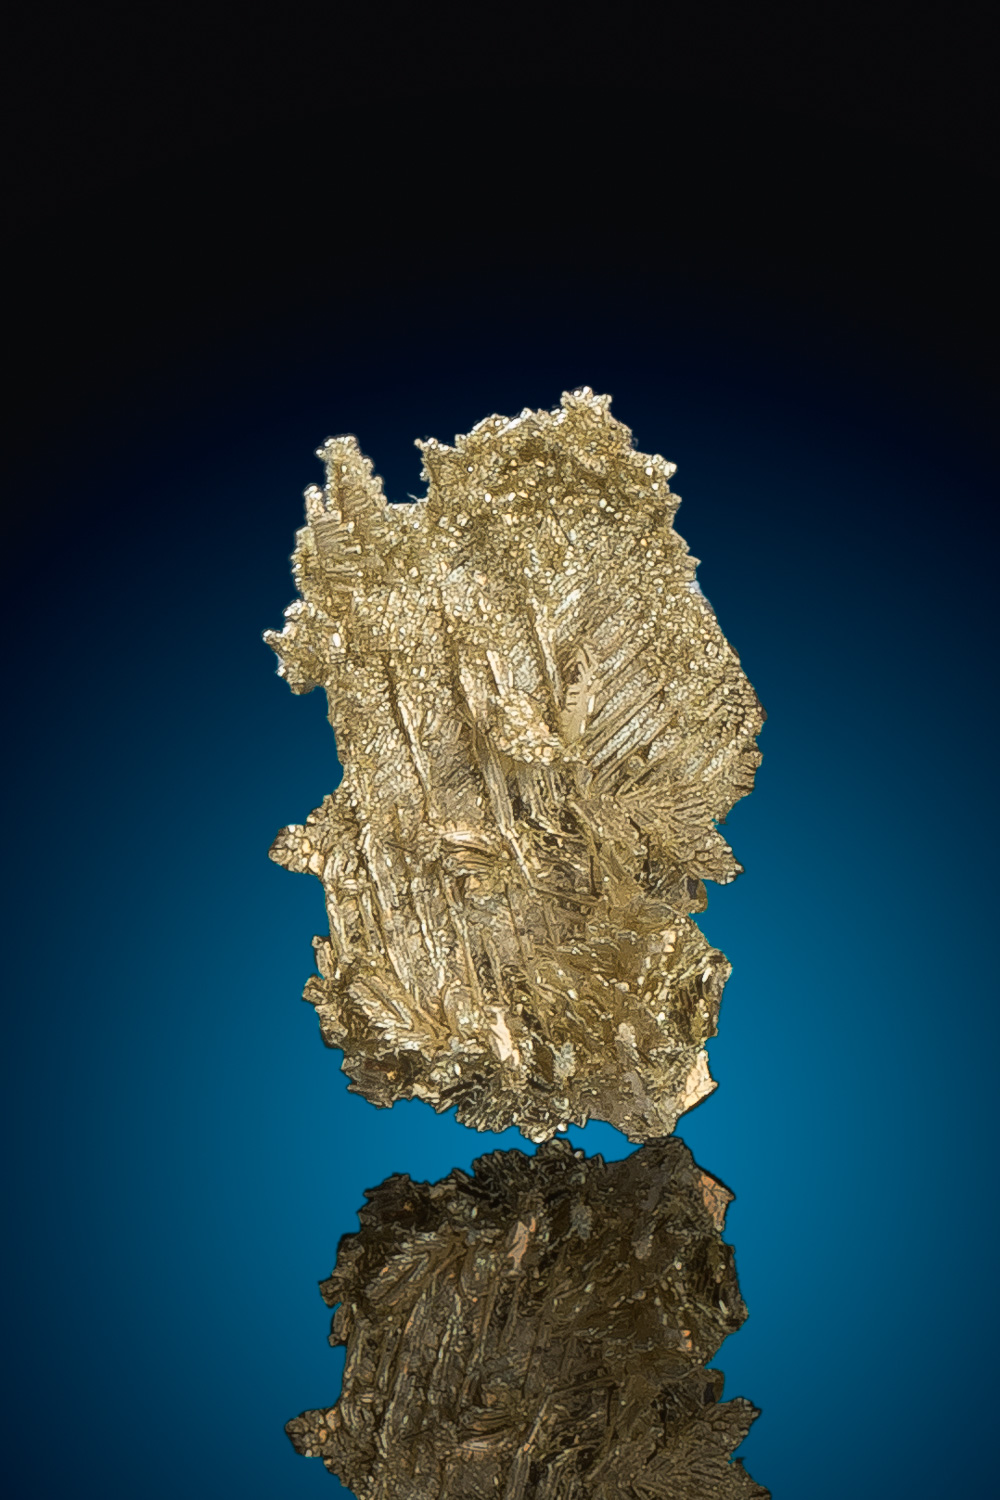 Beautiful Intricate Dendritic Gold Nugget Crystal - Nevada